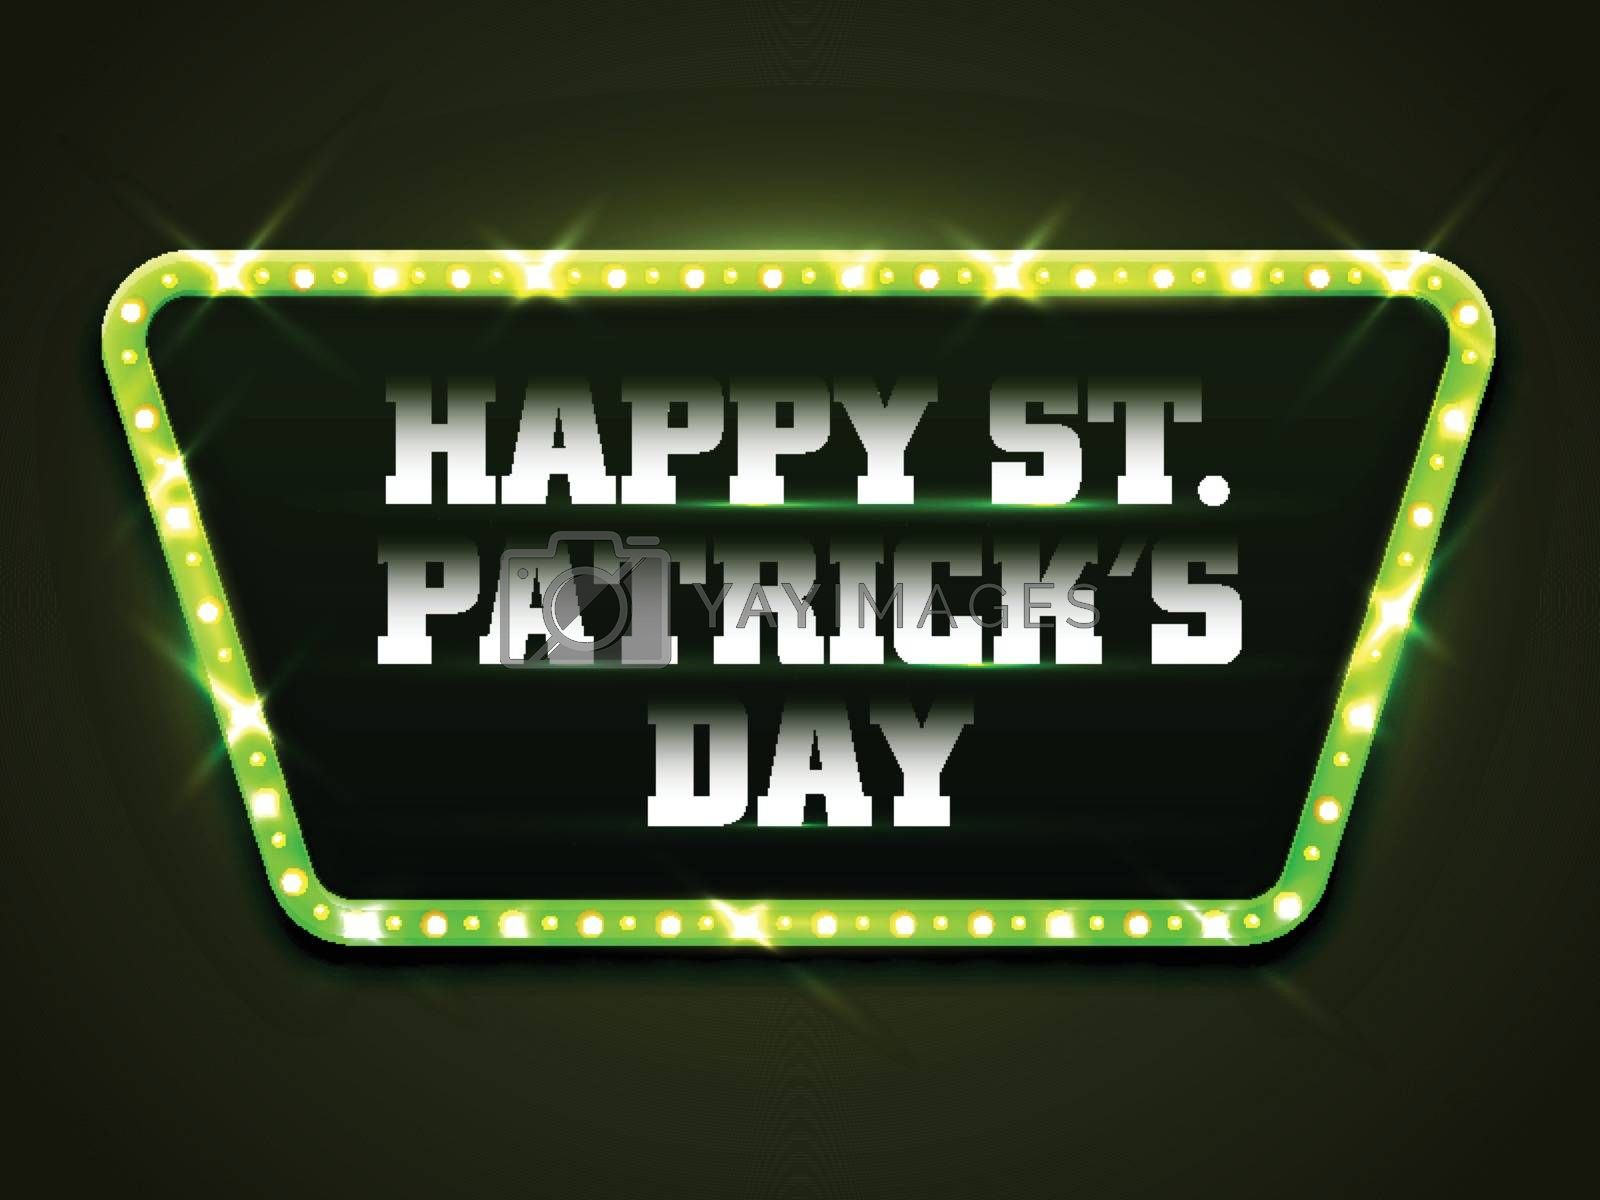 Creative White Text Happy St. Patrick's Day in Marquee lights decorated Frame.